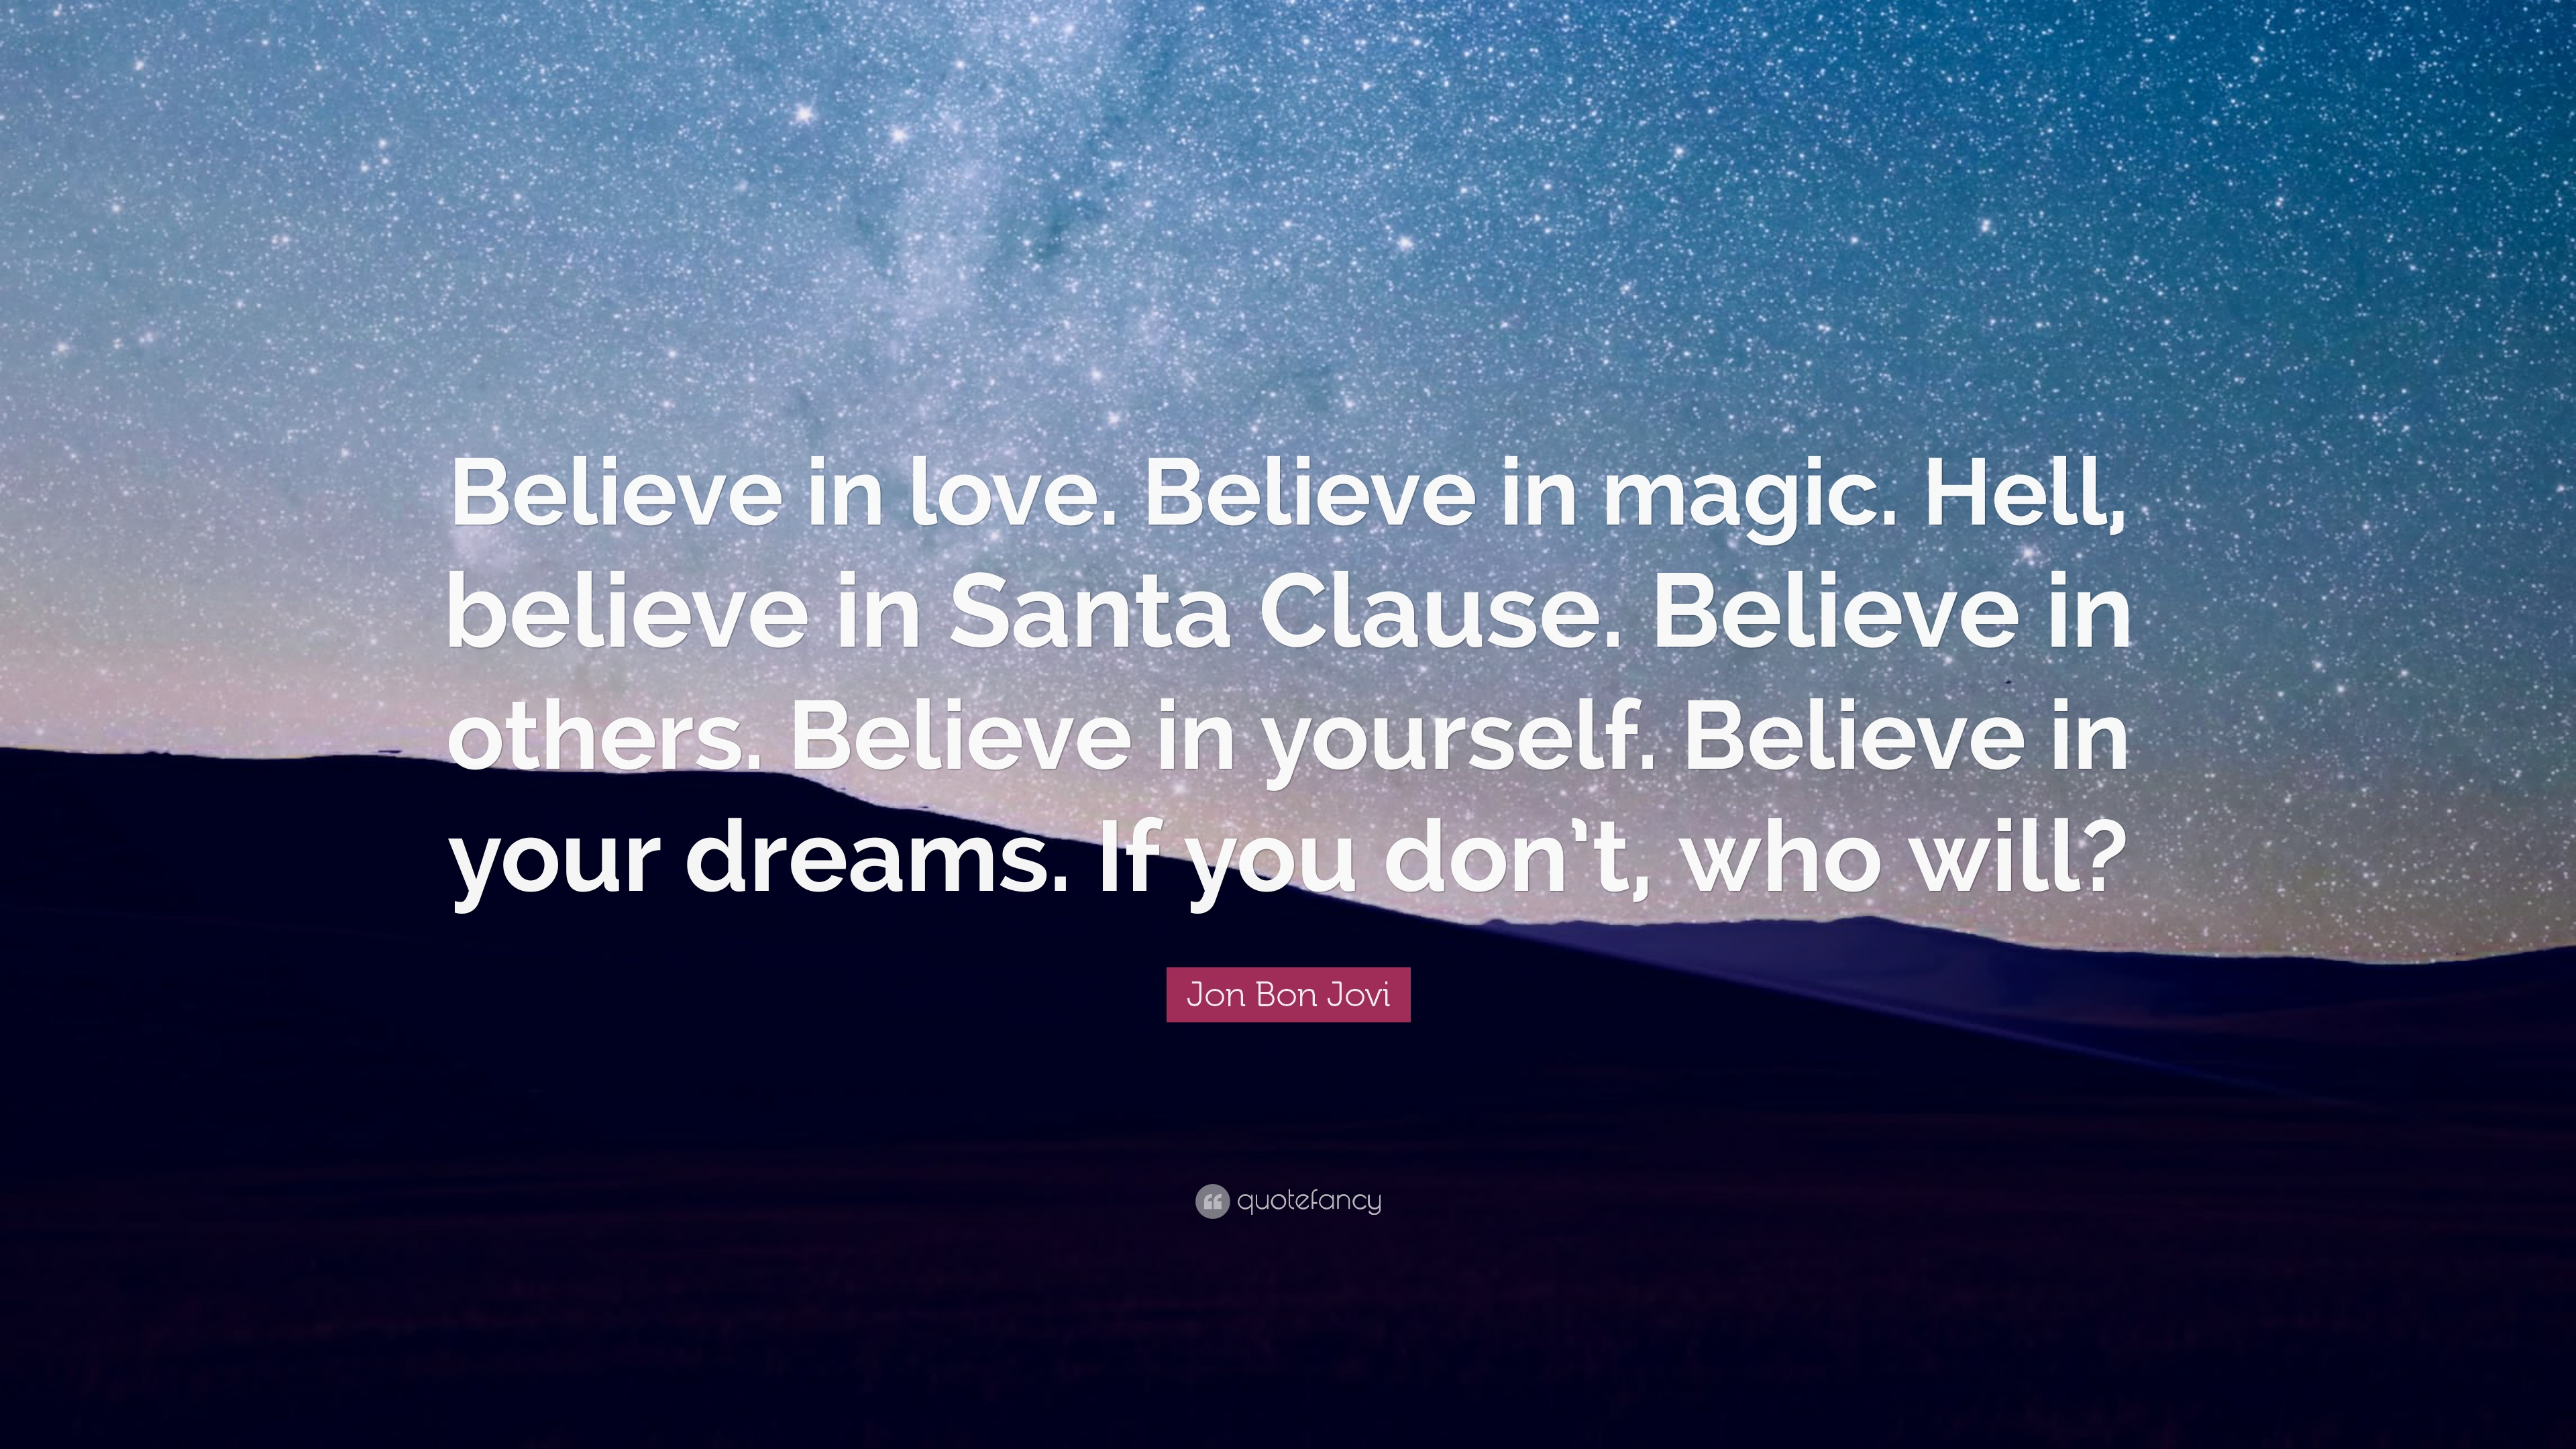 "Jon Bon Jovi Quote: ""Believe in love. Believe in magic. Hell, believe in Sant..."